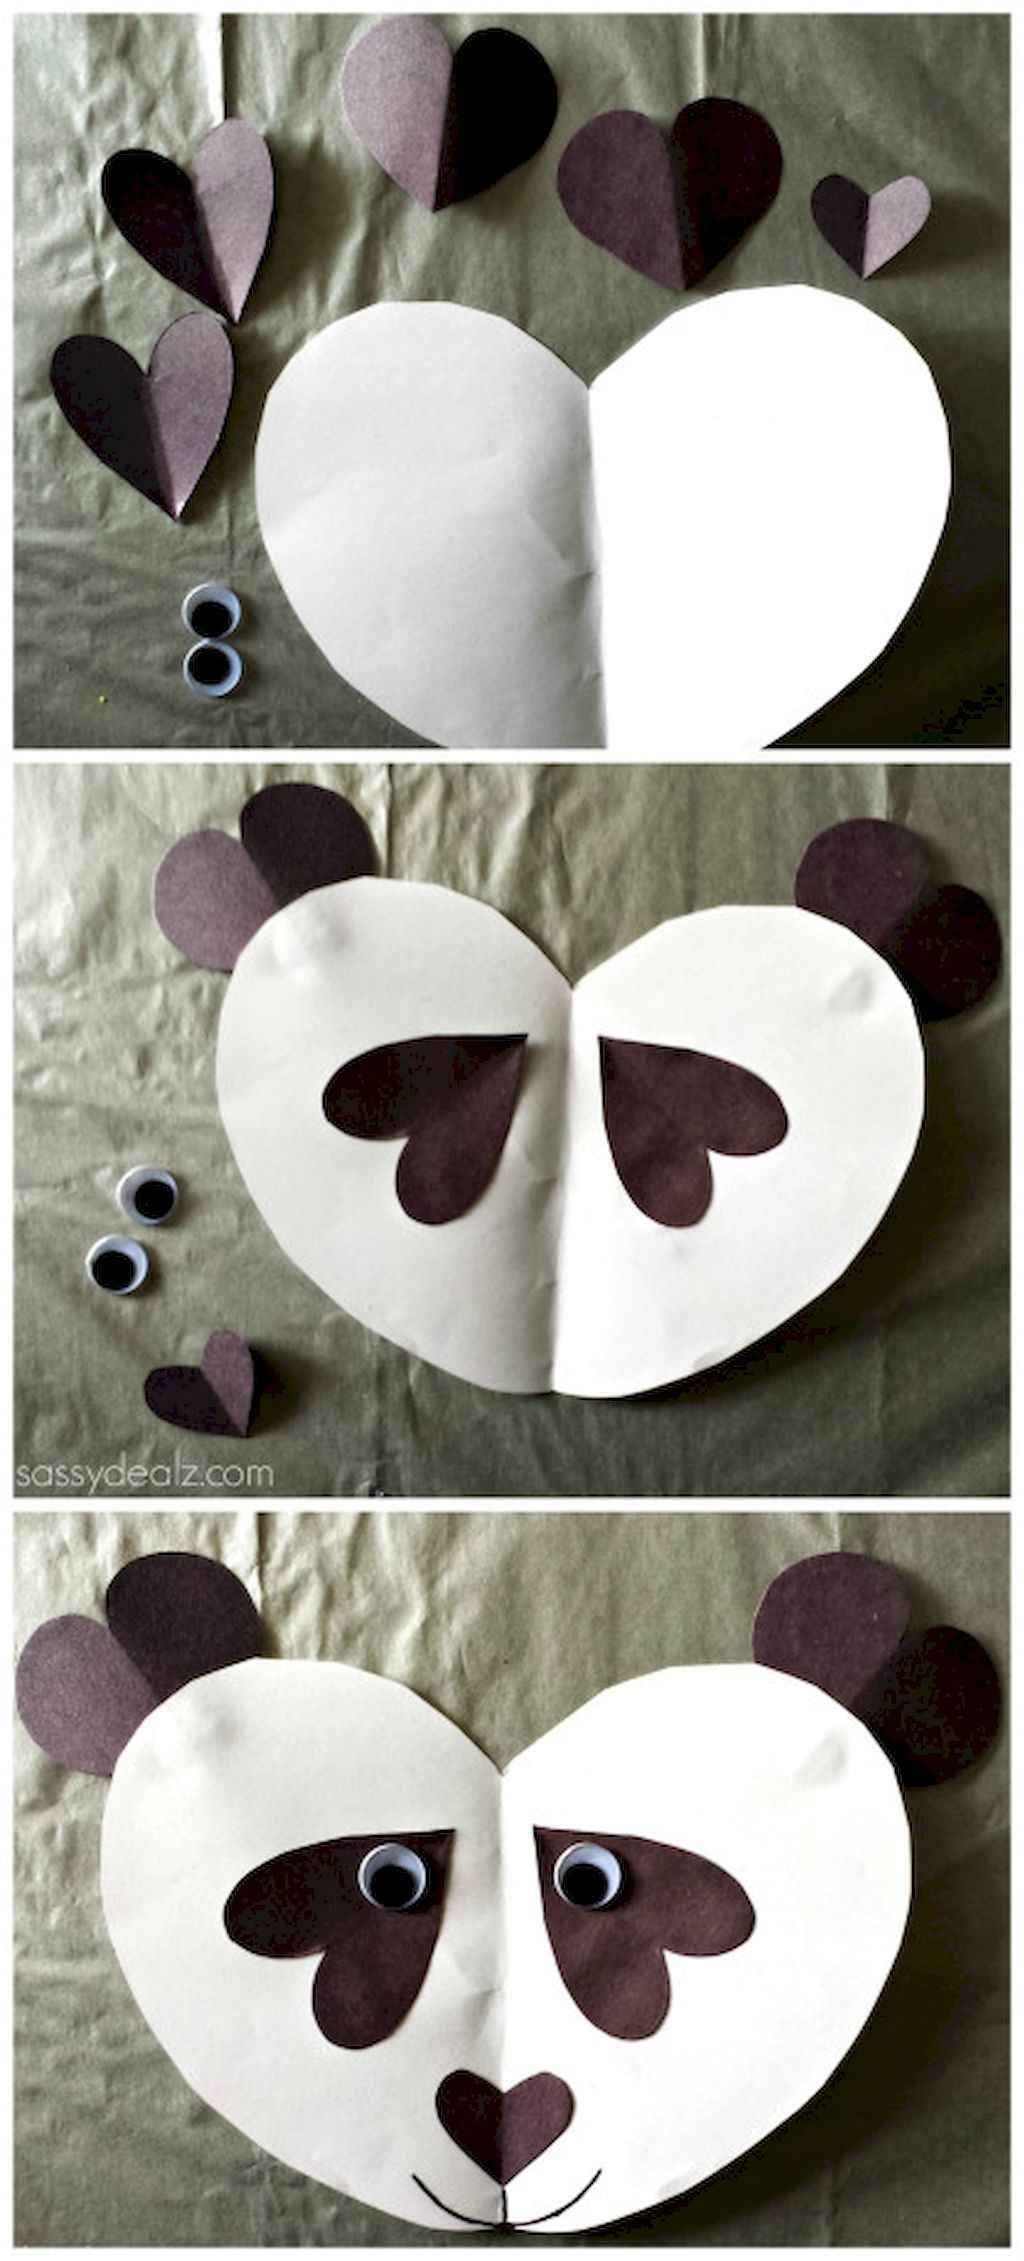 60 Romantic Valentines Crafts Ideas On A Budget (11)